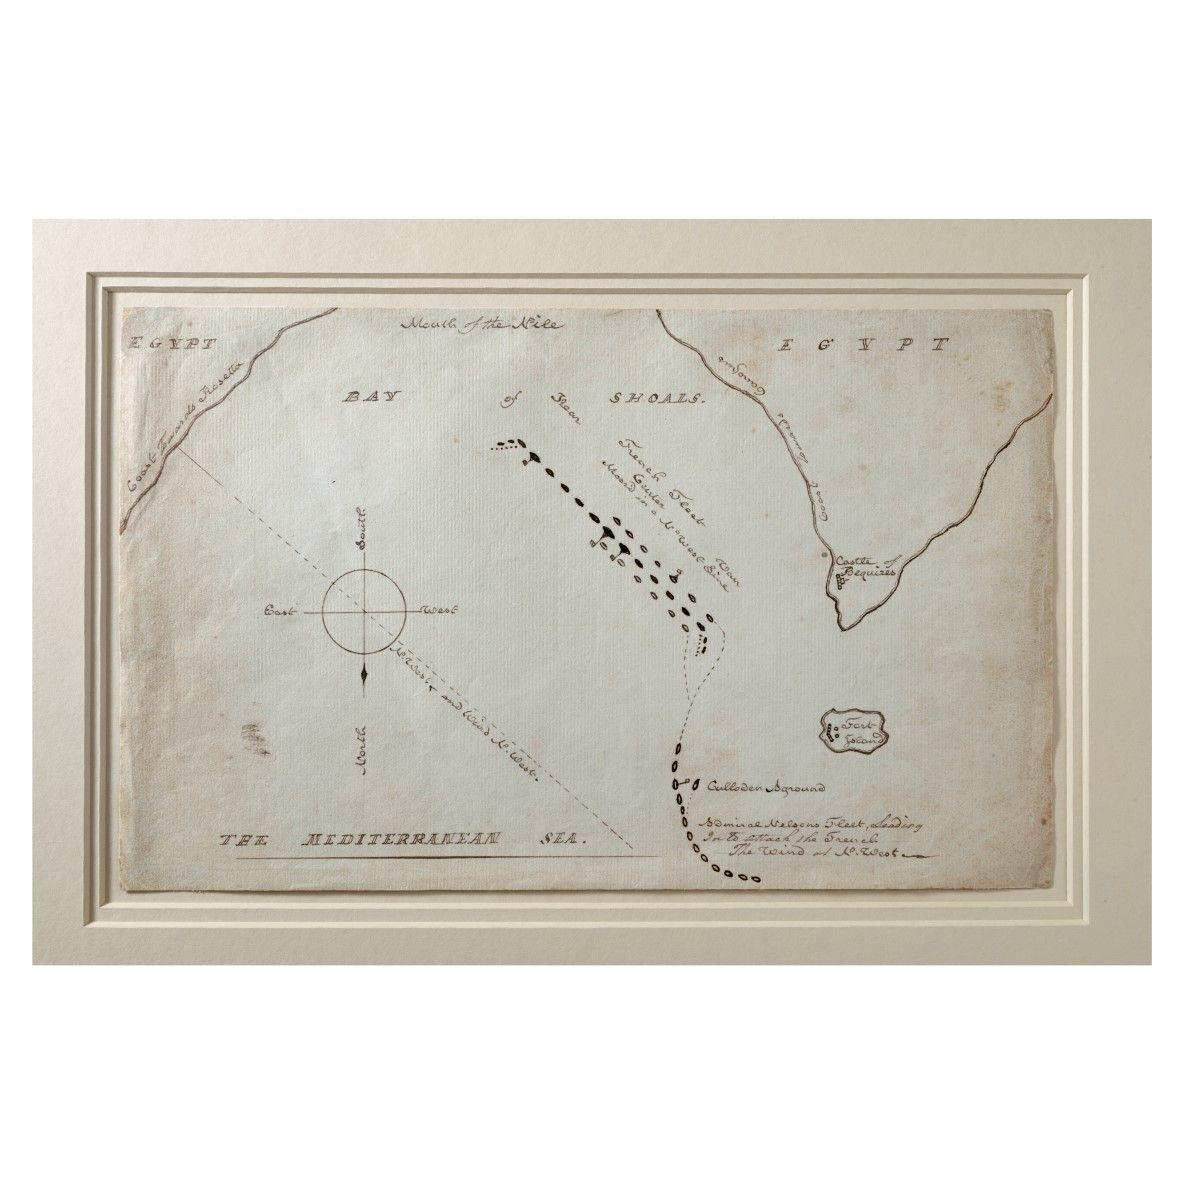 HMS Zealous Plan of the Battle of the Nile